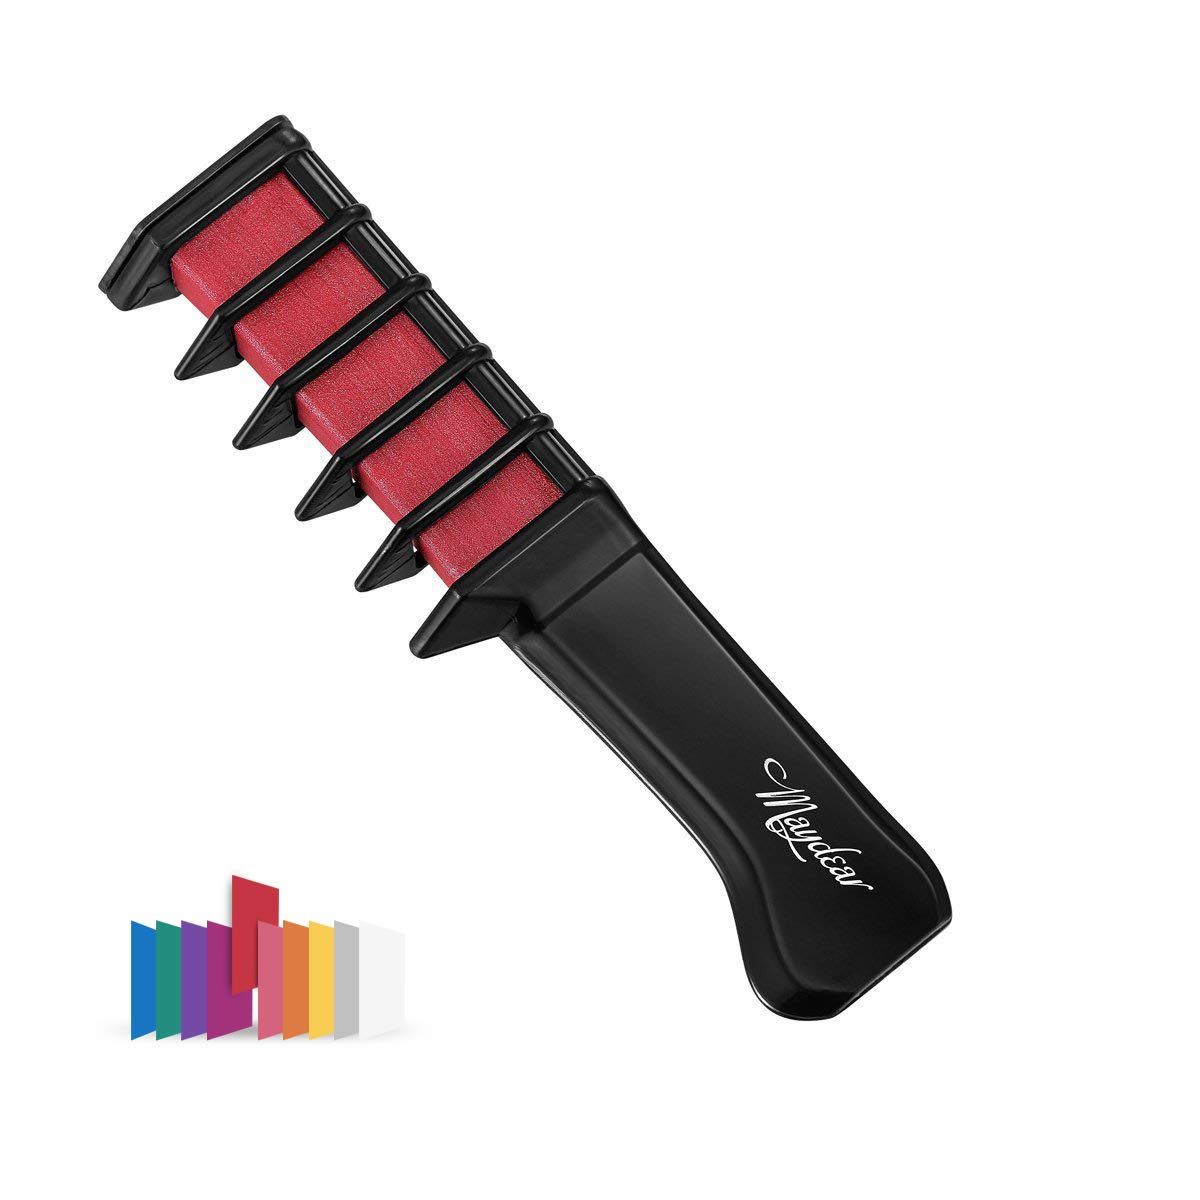 Maydear Temporary Hair Chalk Comb - Non Toxic Hair Color Comb and Safe for Kids (9 Color Options) (Purple)